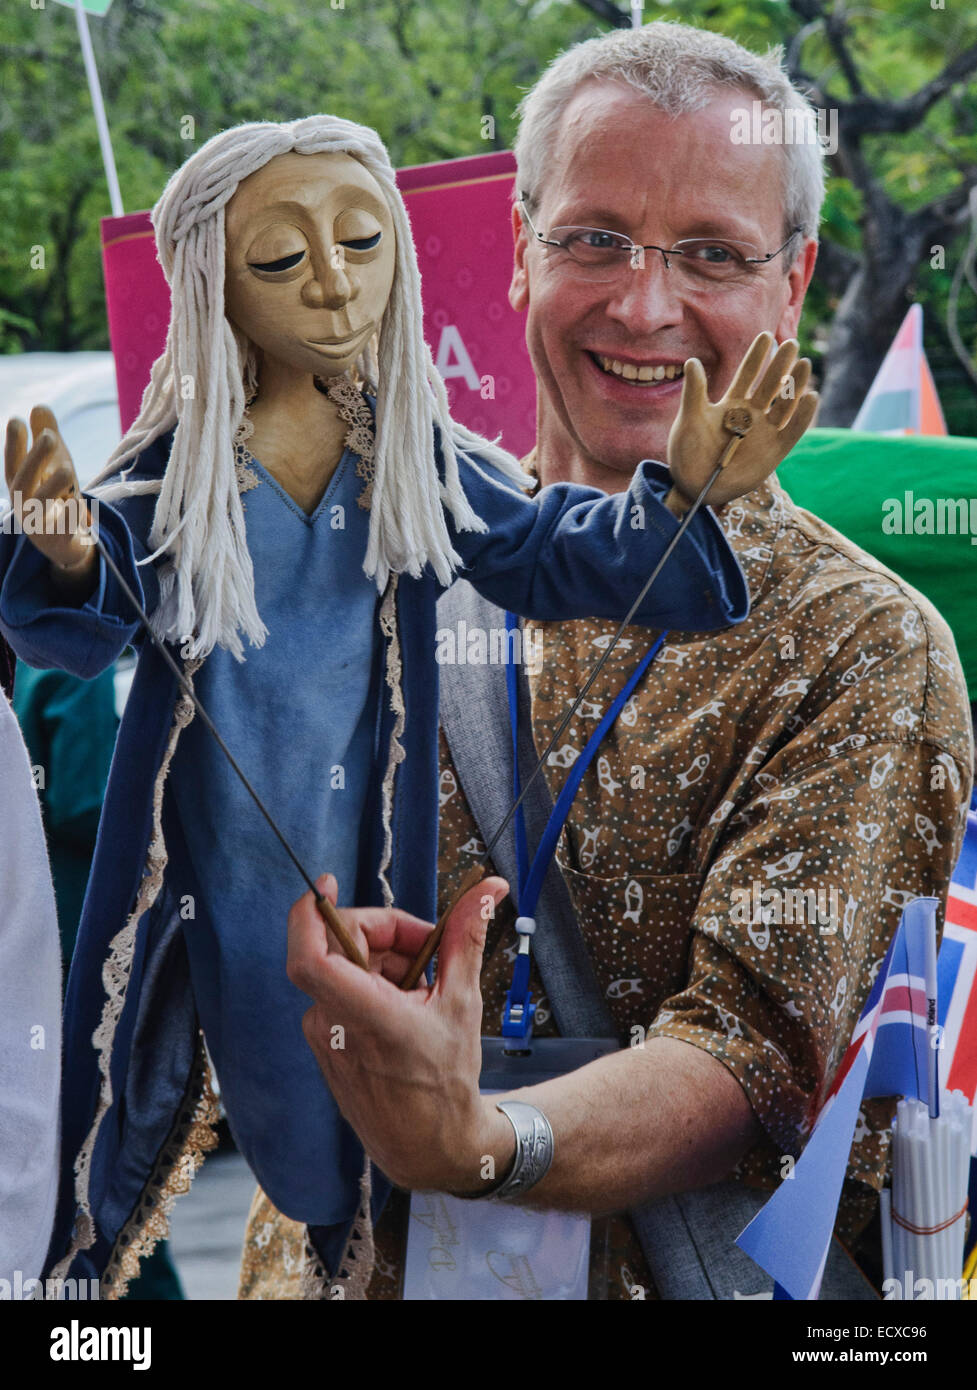 Puppeteer and his puppet at the Harmony World Puppet Festival in Bangkok, Thailand - Stock Image